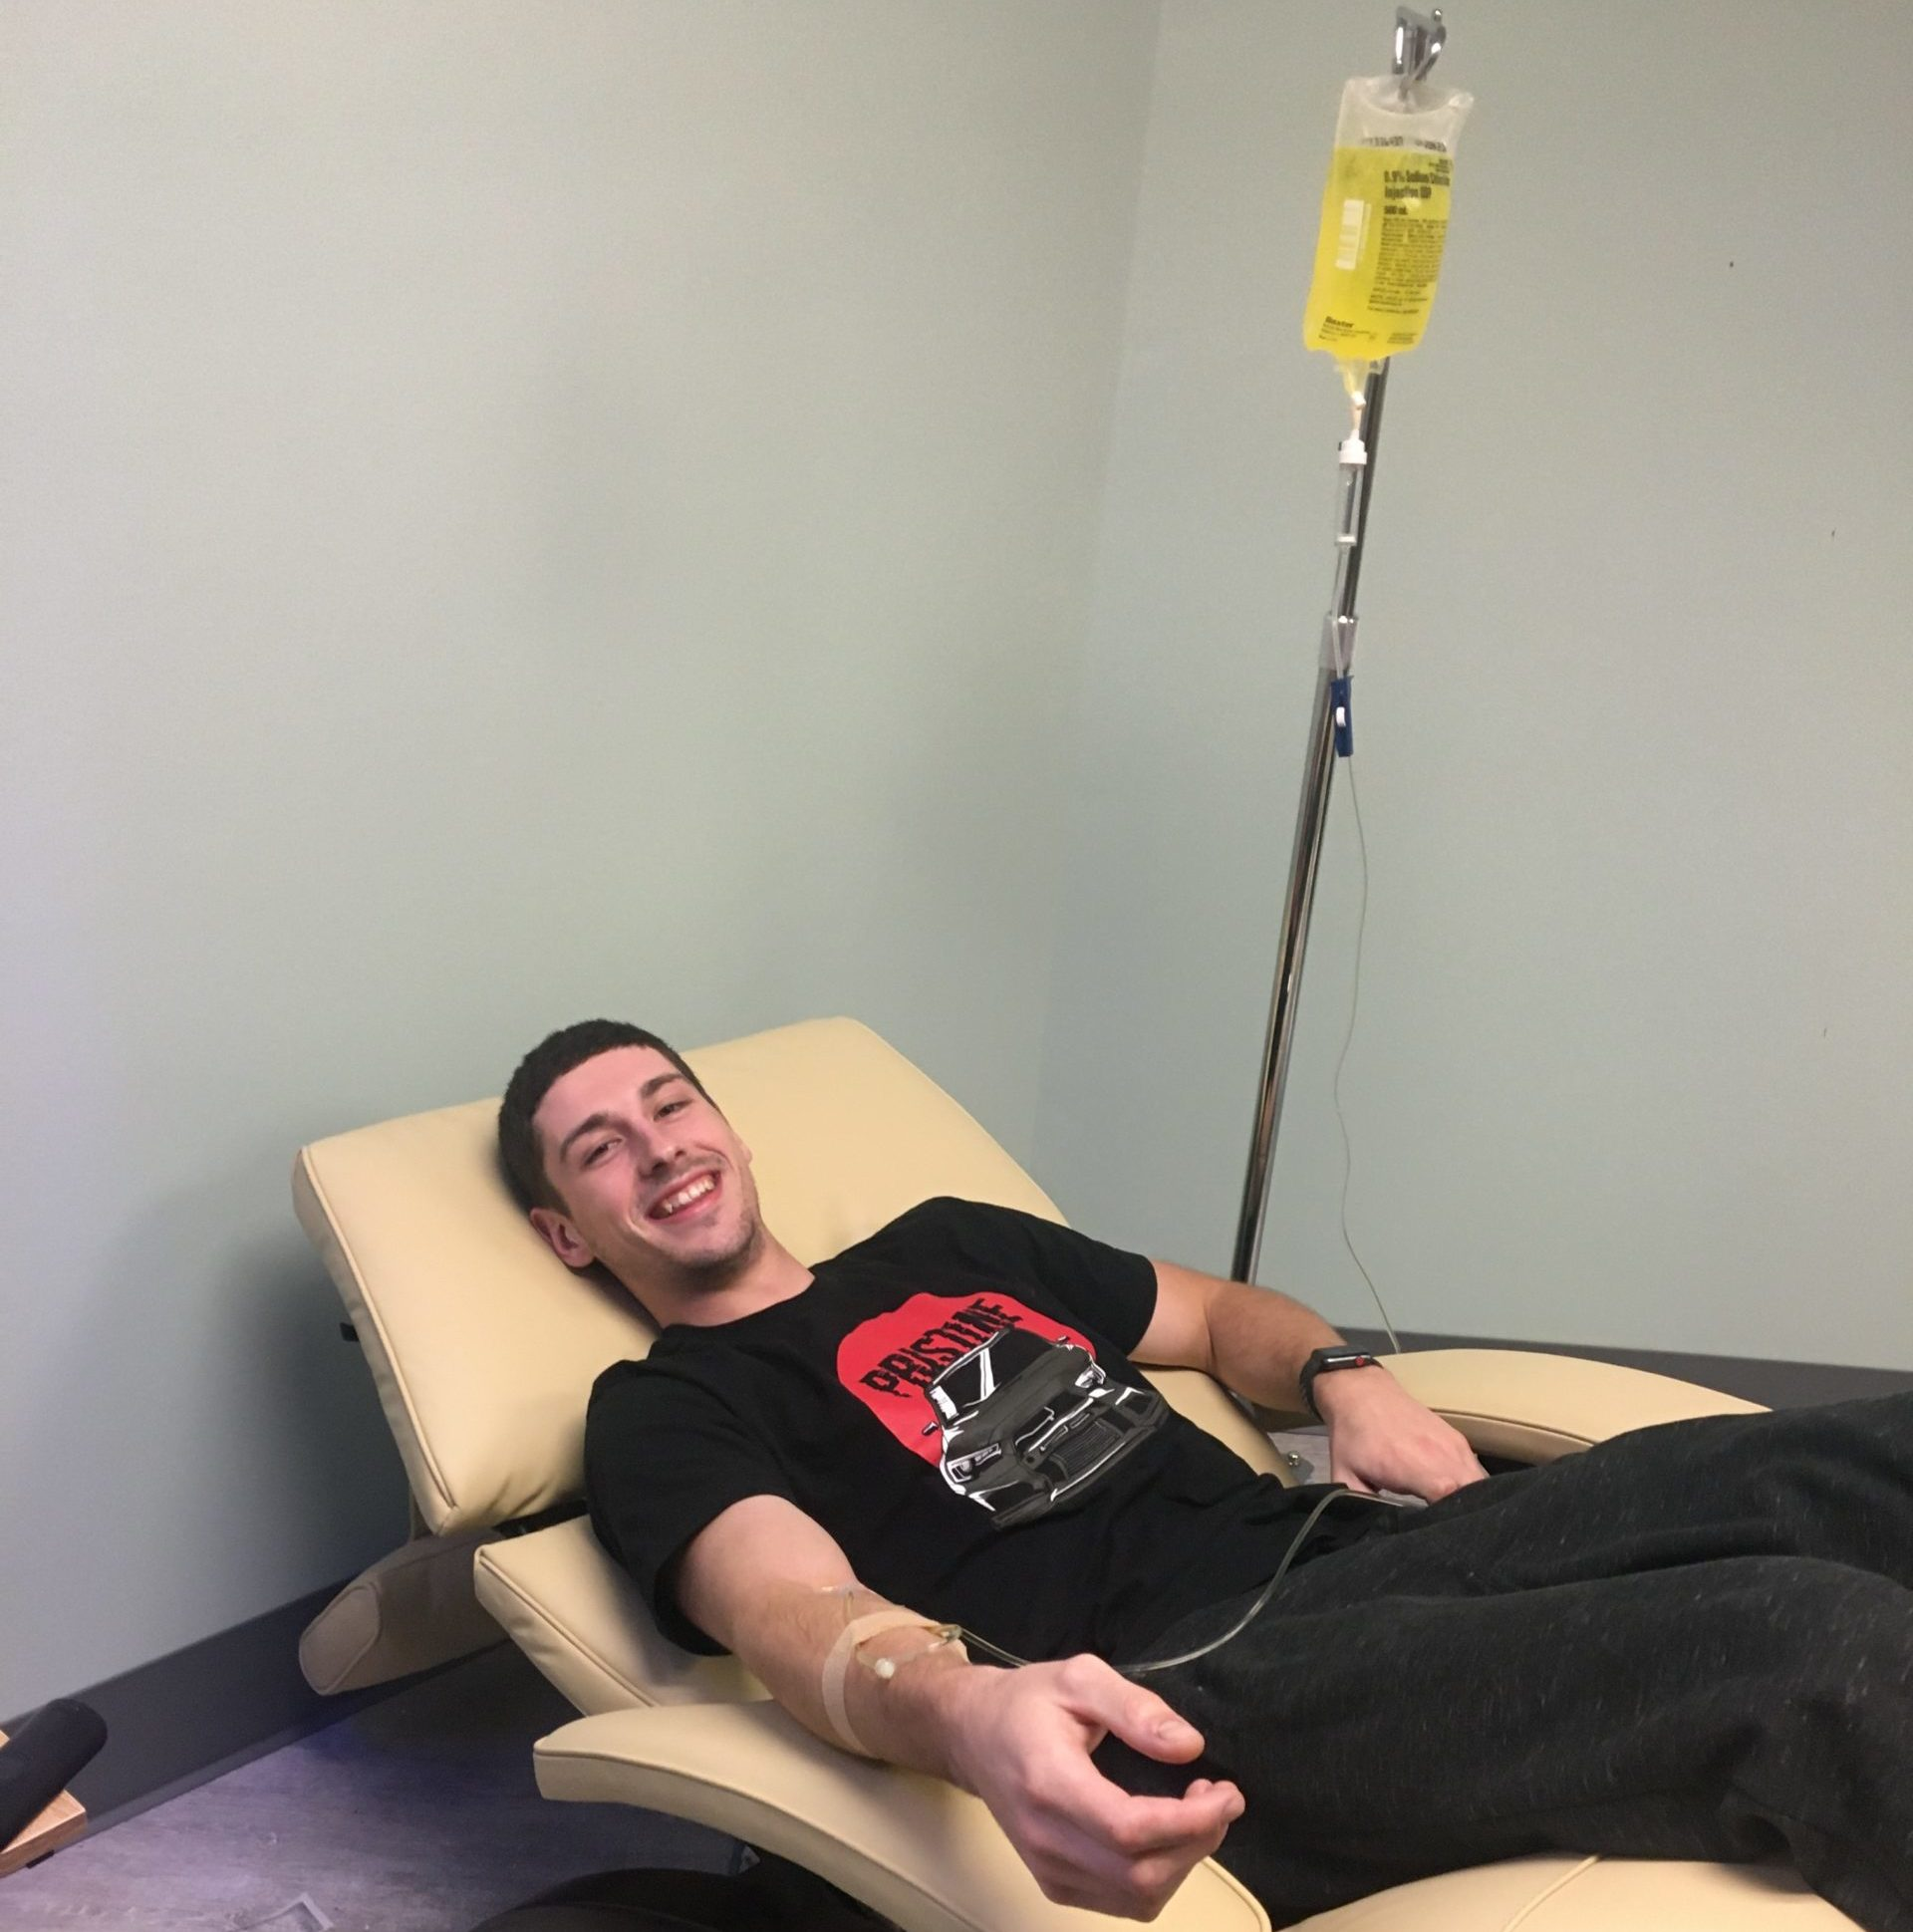 Young man smiling as he an IV bag drips IV hydration nutrients into his right arm.